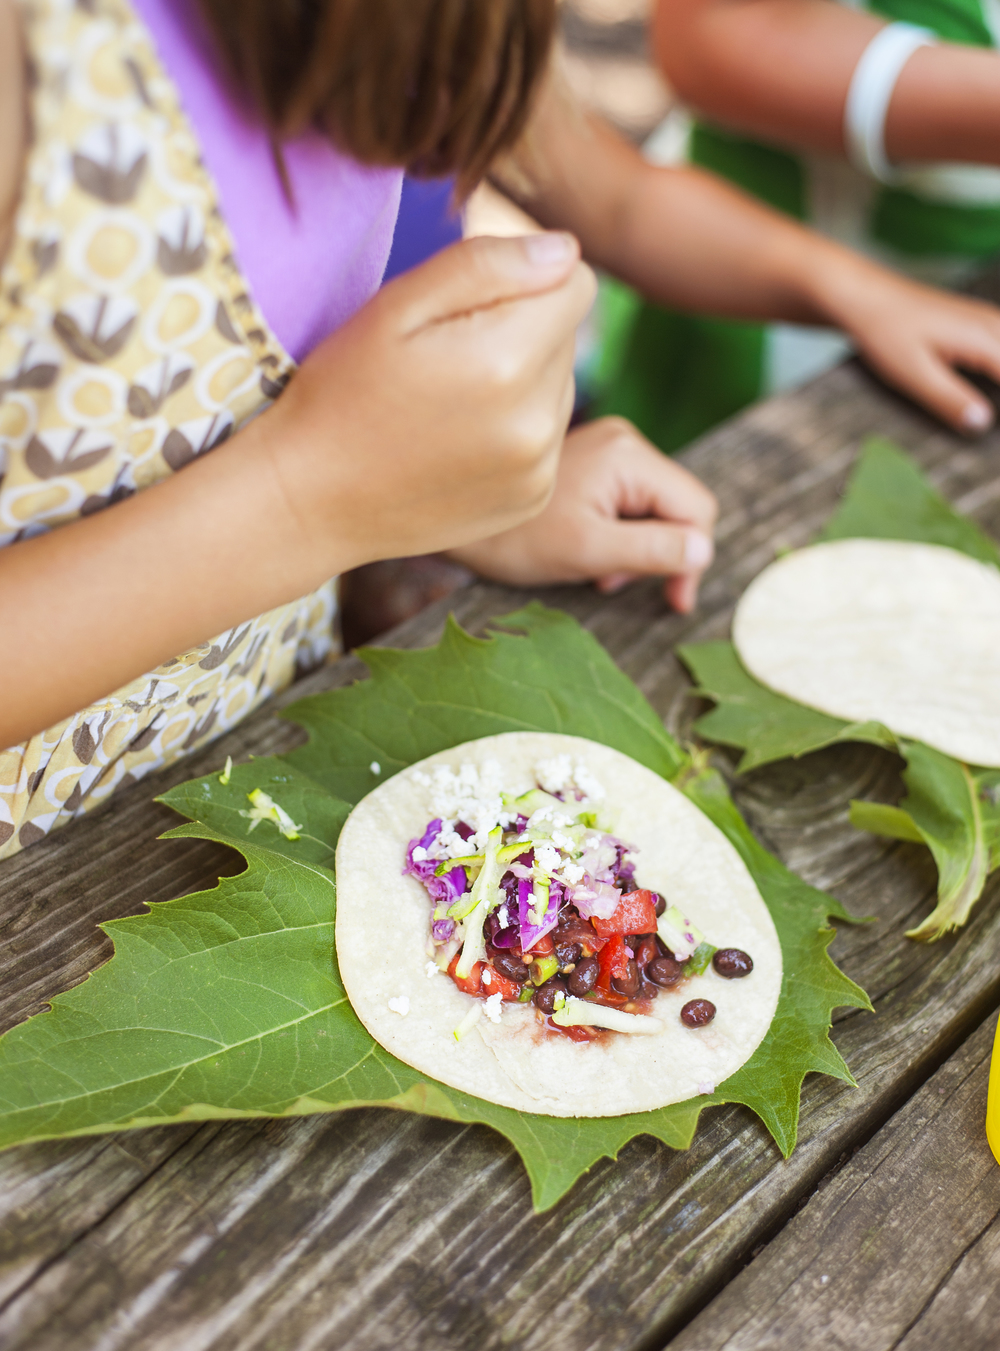 Kids Cook Classroom & Garden | Tony Kubat Photography